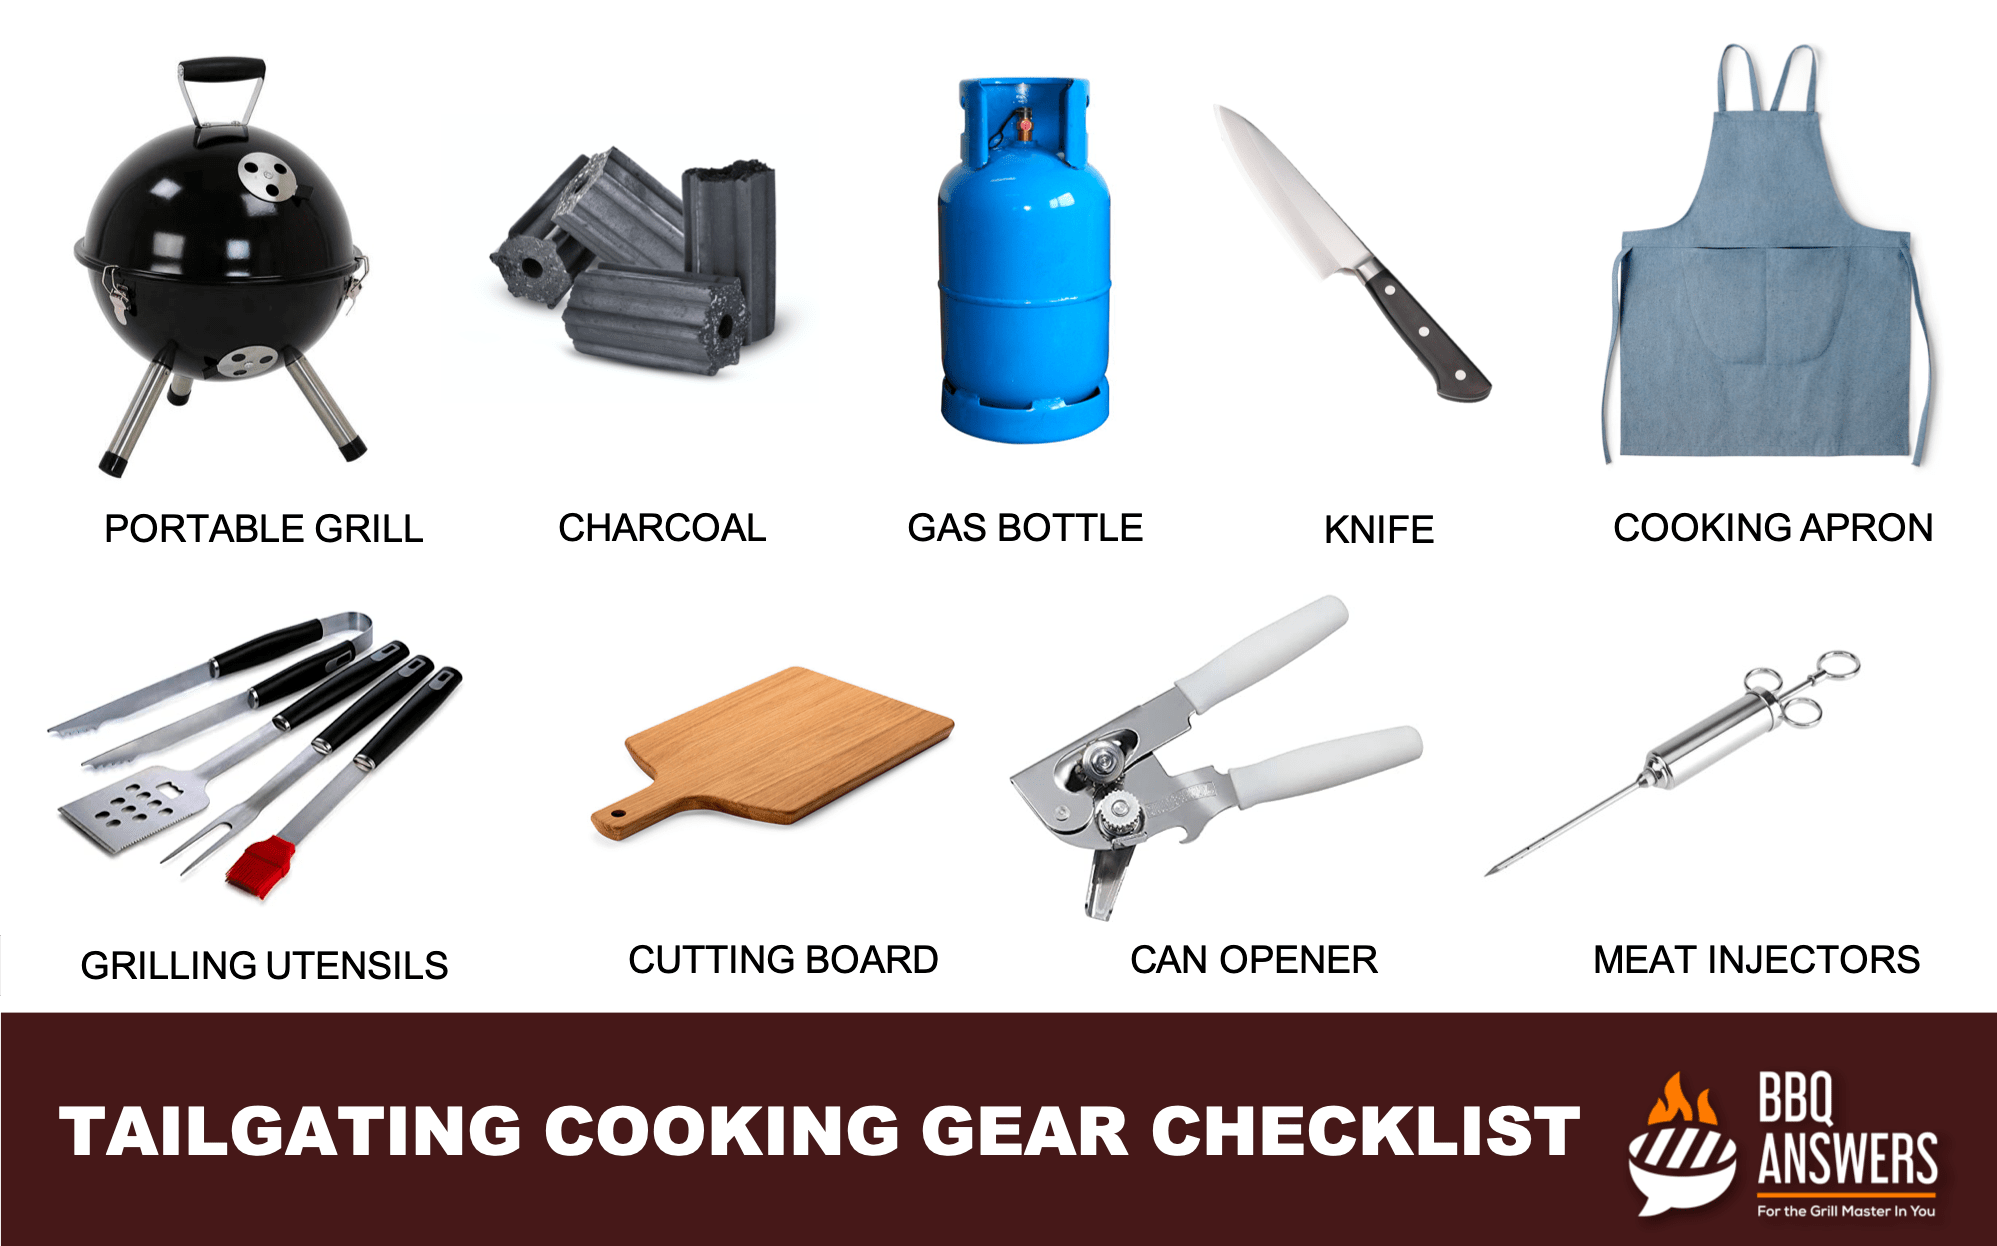 Tailgating Cooking Gear Checklist | BBQanswers